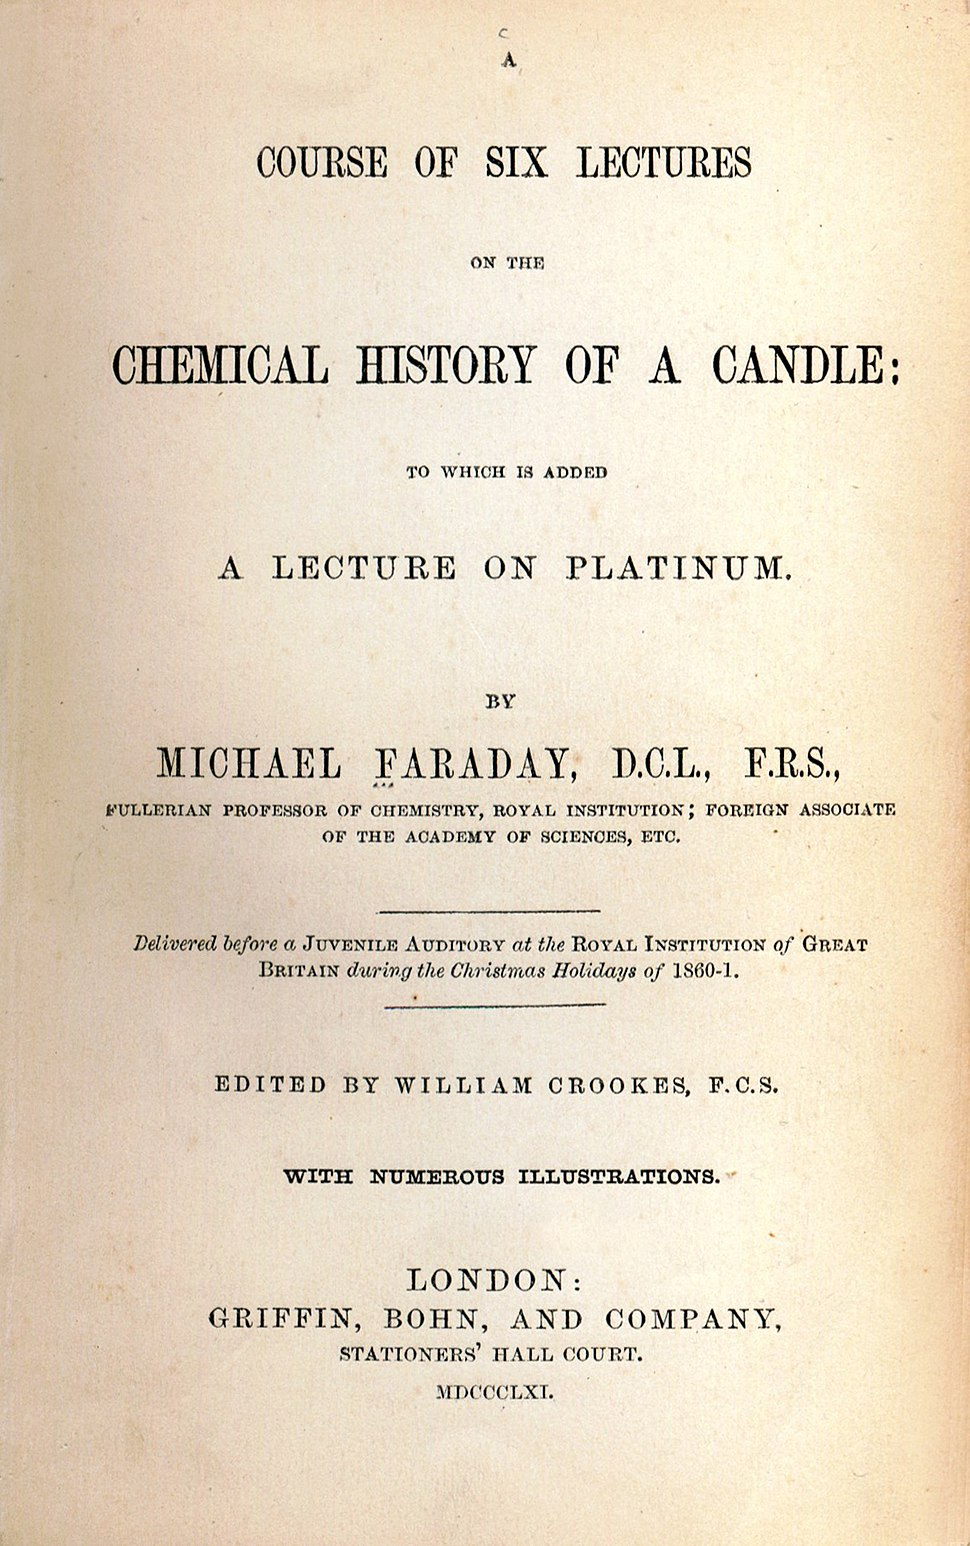 Faraday title page